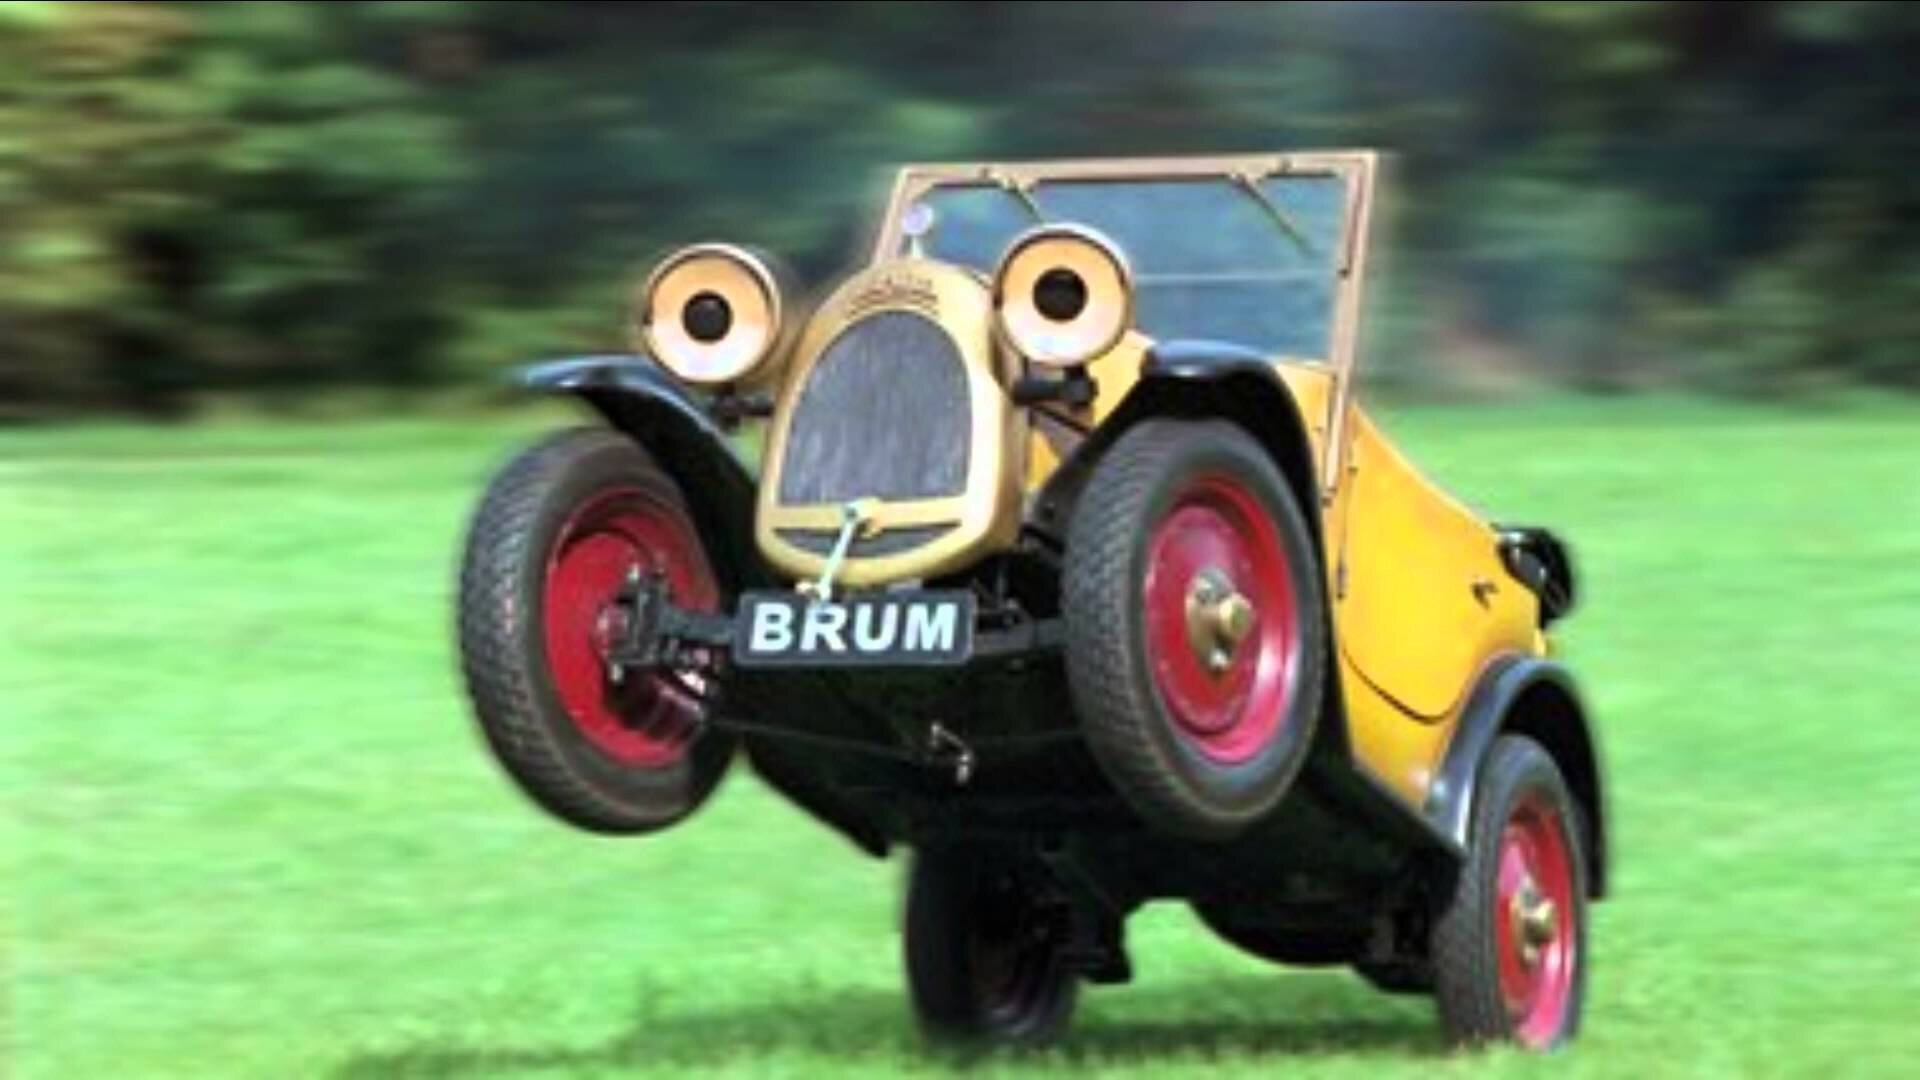 Car That Are Cool >> Broom broom fast car - Lego Creations - The TTV Message Boards